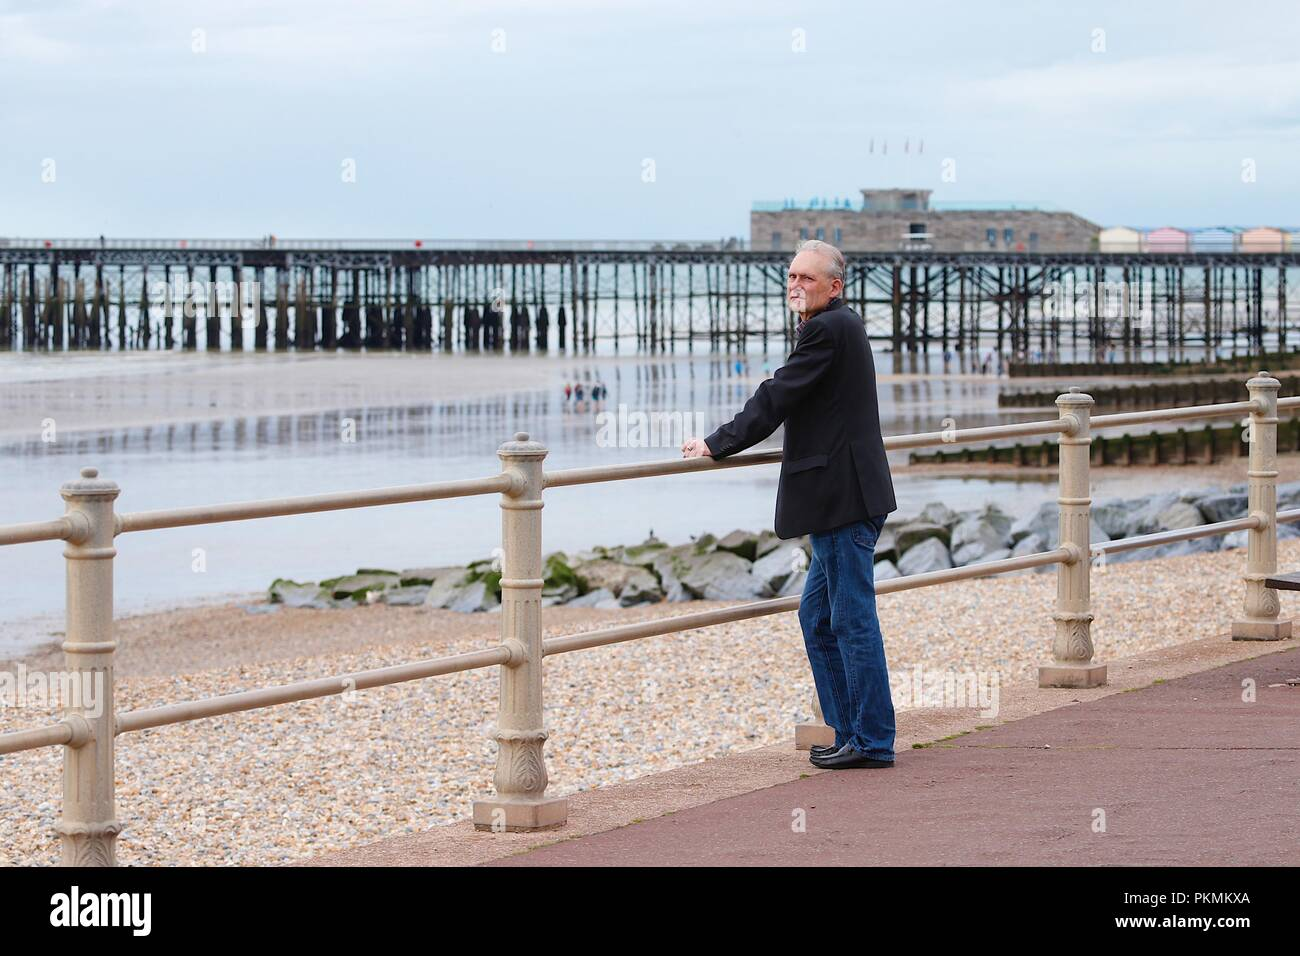 Hastings, East Sussex, UK. 14th Sep, 2018. UK Weather: Cloudy with a drop in temperature but pleasant morning in the seaside town of Hastings. © Paul Lawrenson 2018, Photo Credit: Paul Lawrenson / Alamy Live News - Stock Image